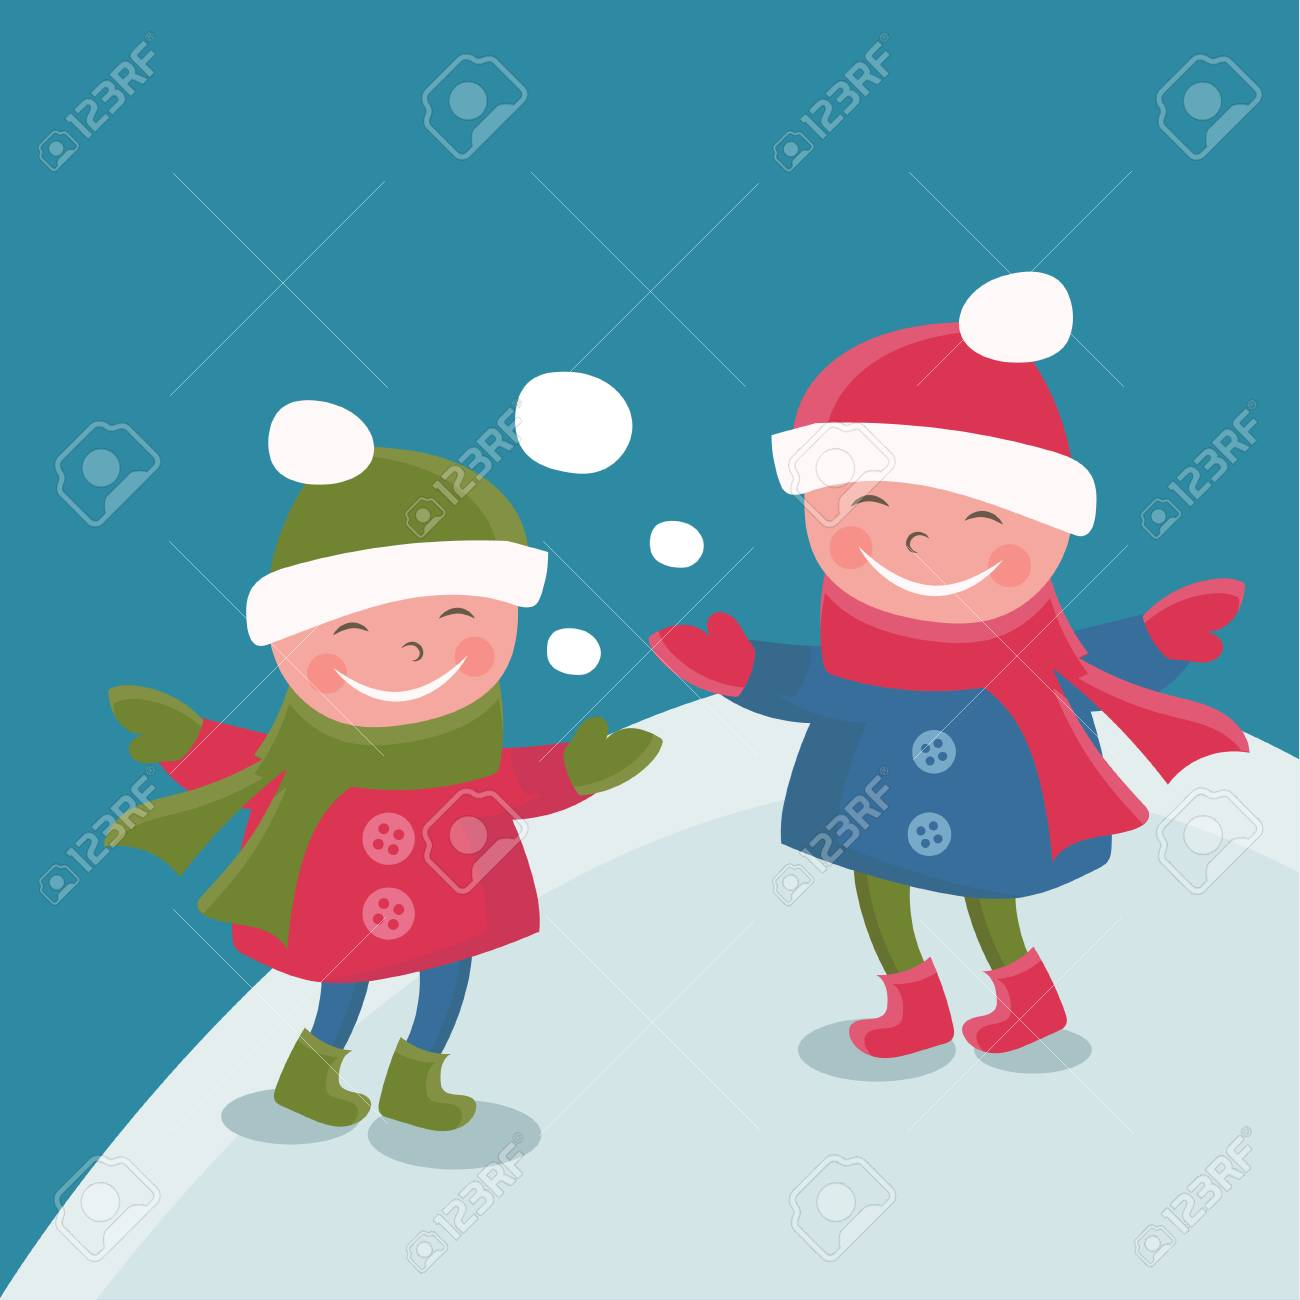 6e90aec92274 Illustration Cartoon Doodle Girls In Winter.Vector Royalty Free ...